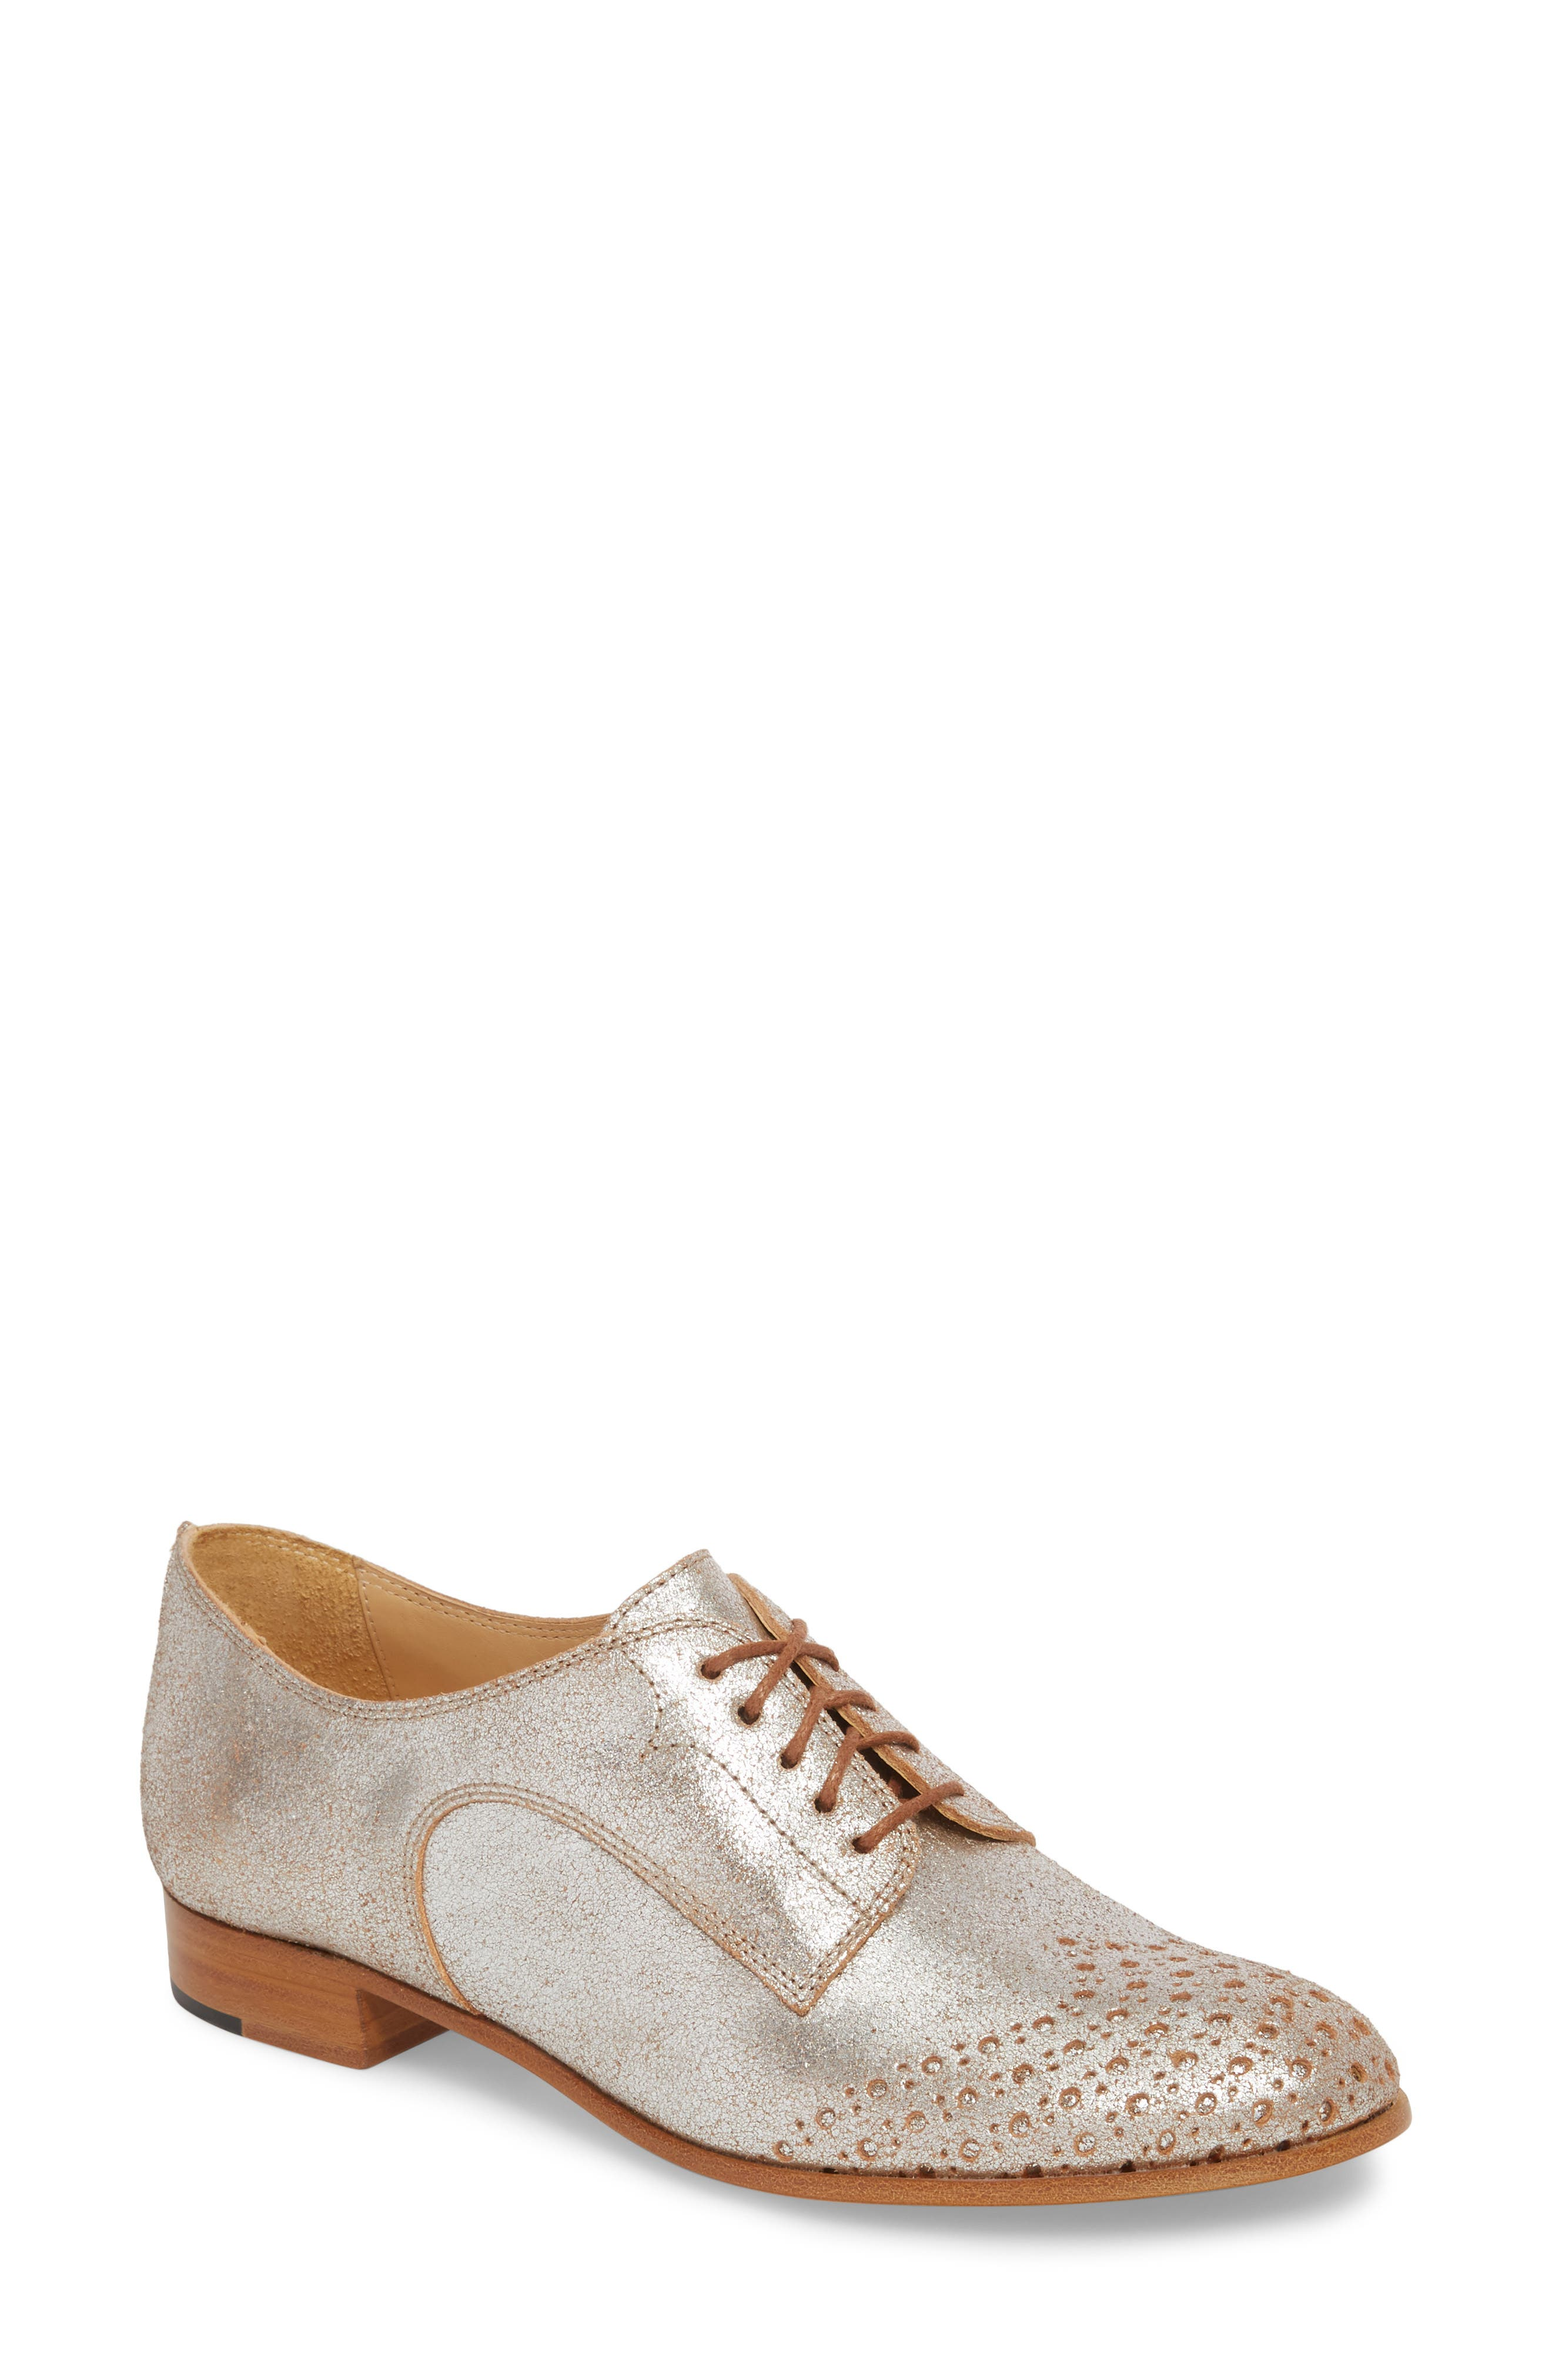 The Office of Angela Scott Mr. Winters Wingtip Oxford (Women)